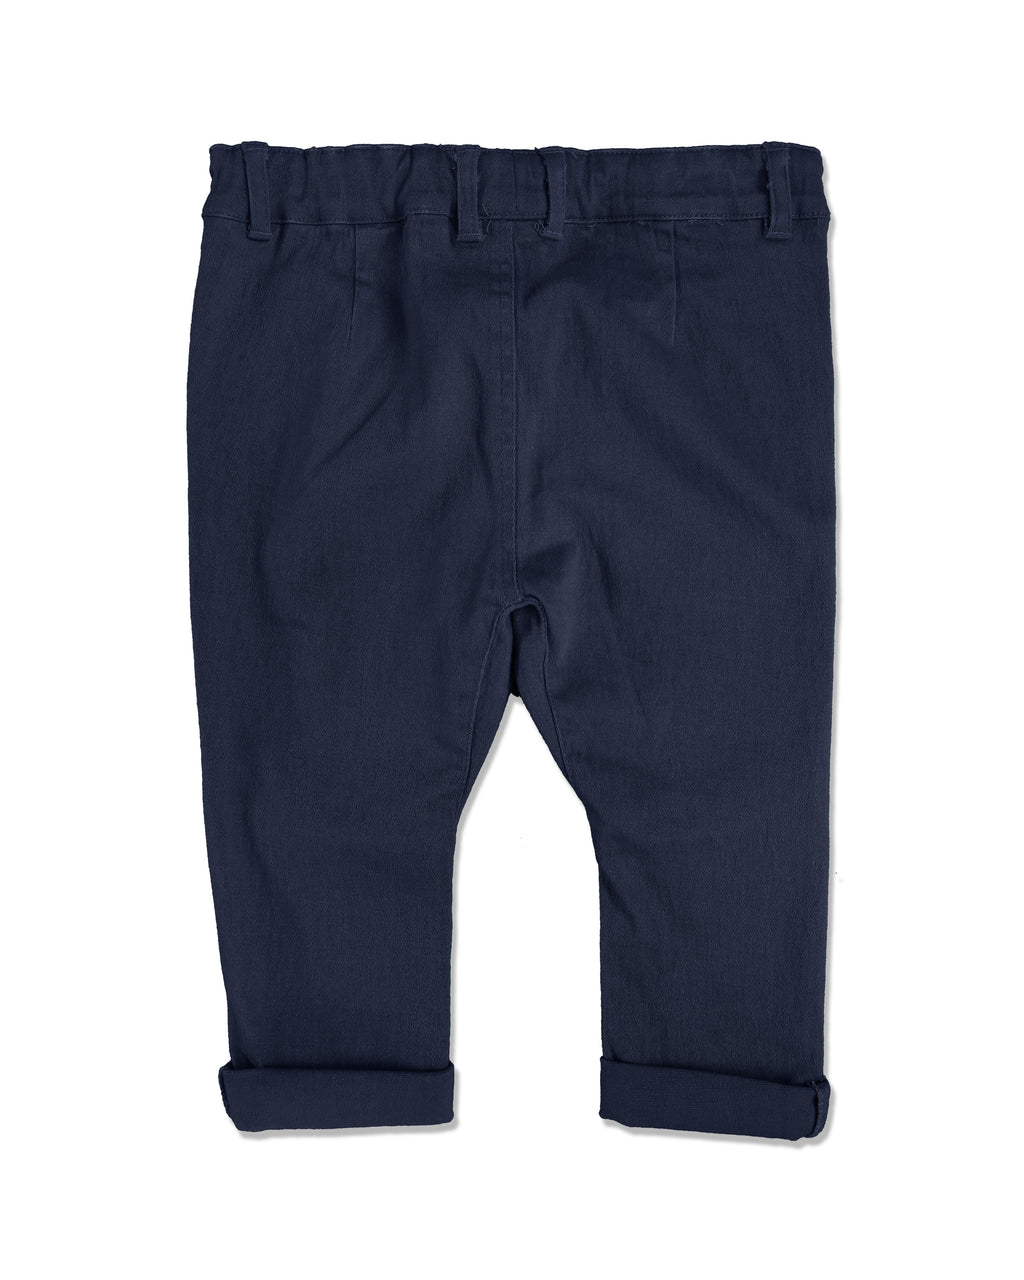 back image of navy woven pants for baby boy